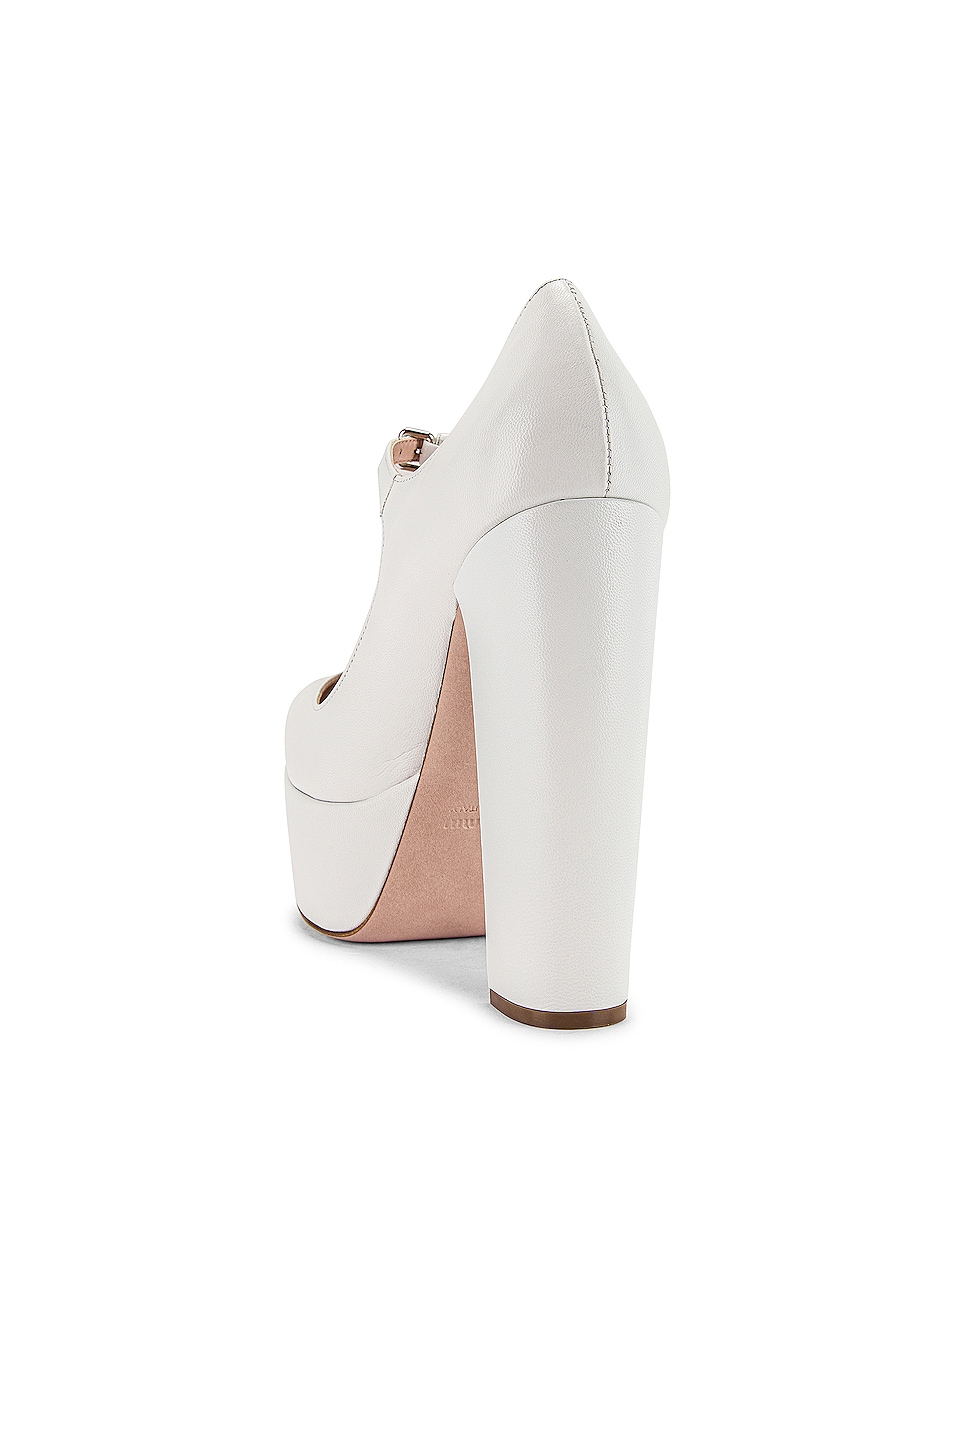 Image 3 of Miu Miu Plain Mary Jane Platform Heels in White